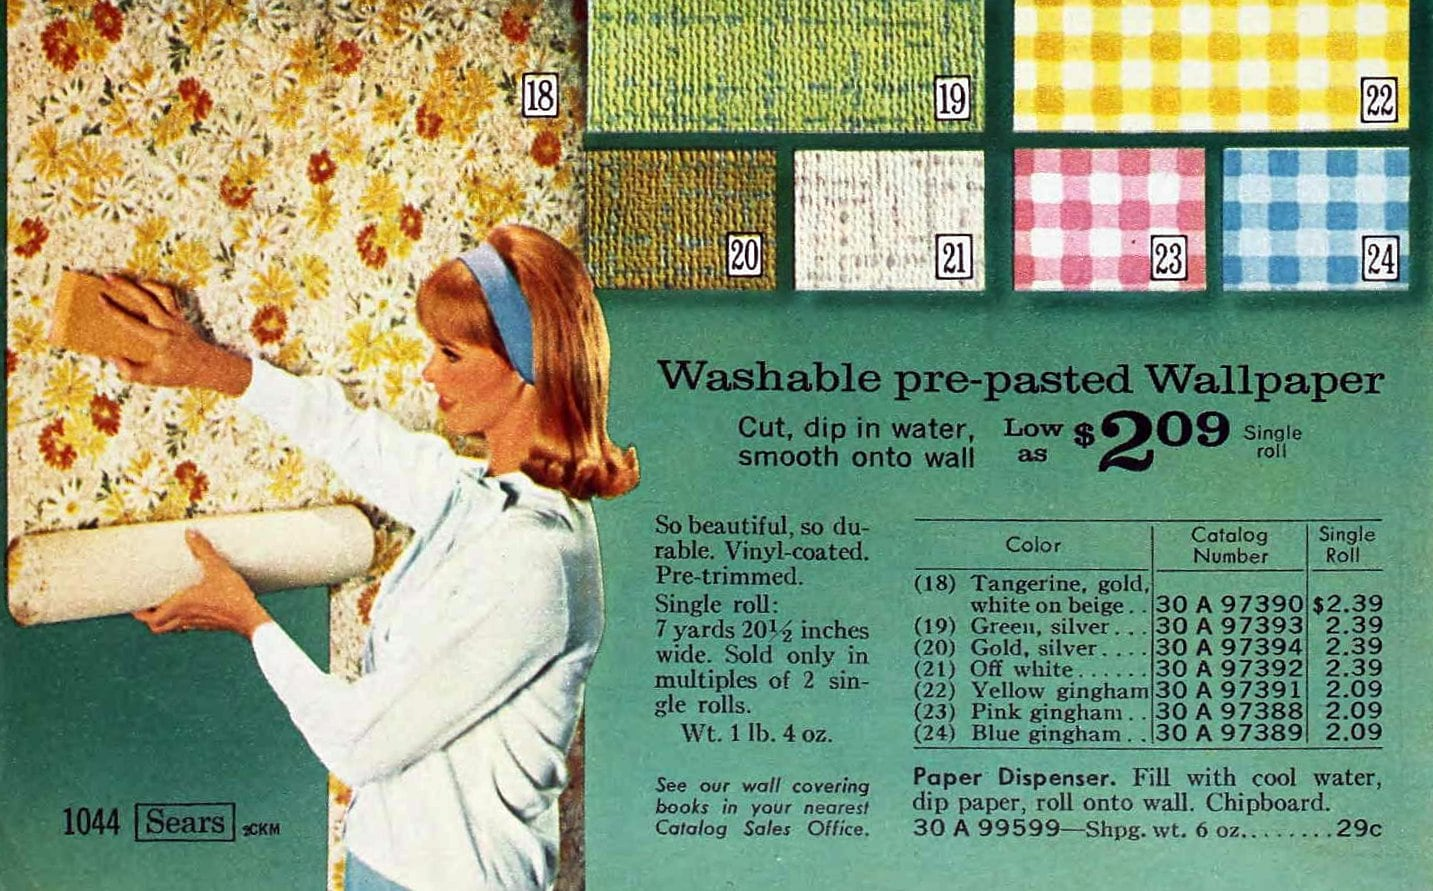 Mid-century 1960s wallpaper styles from 1967